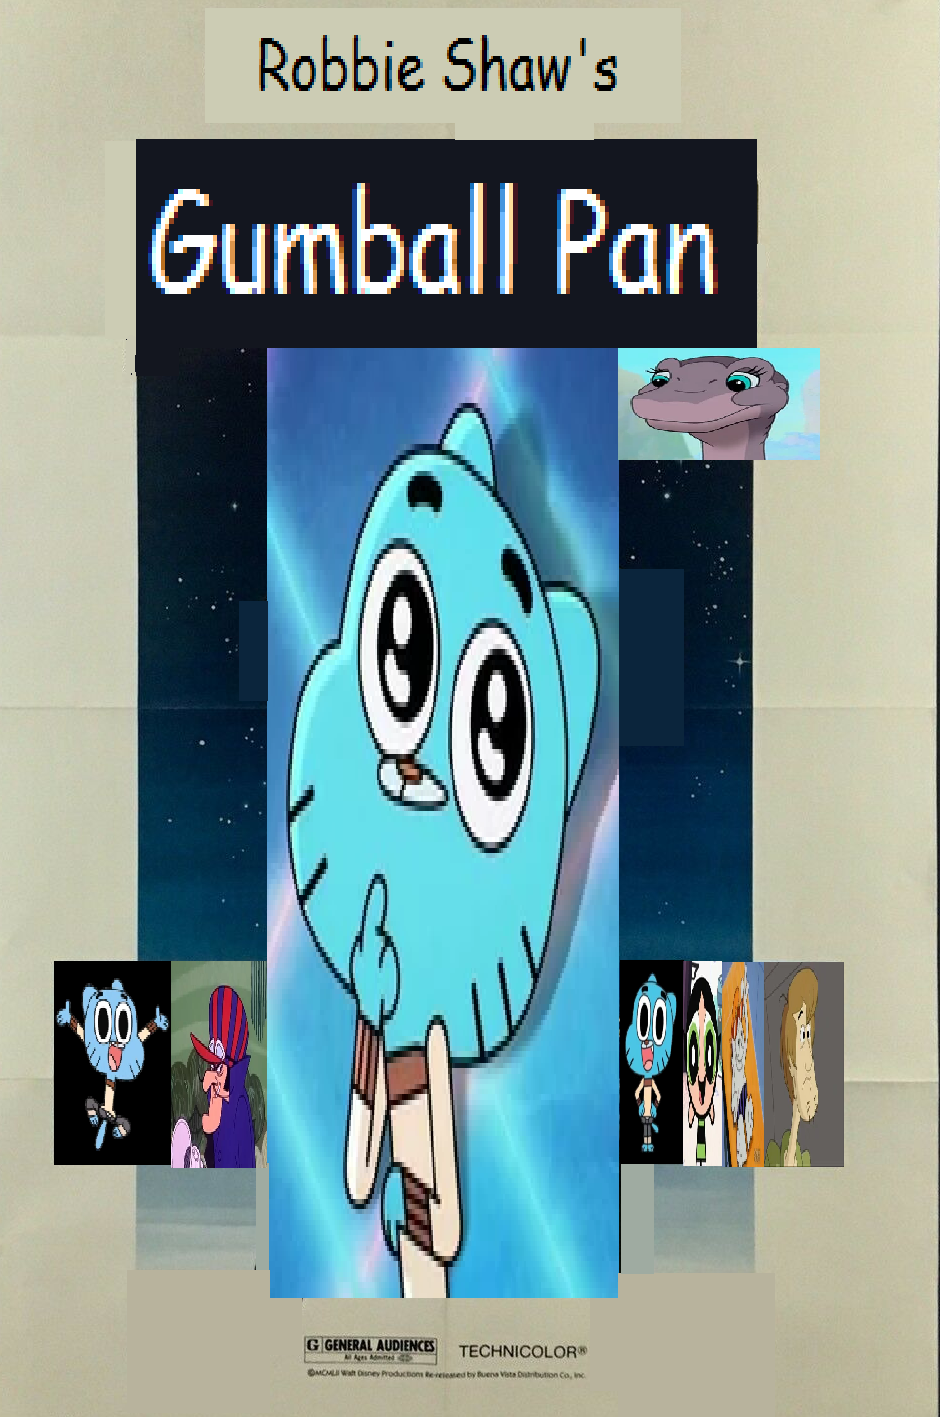 Gumball Pan (Robbie Shaw's Style)